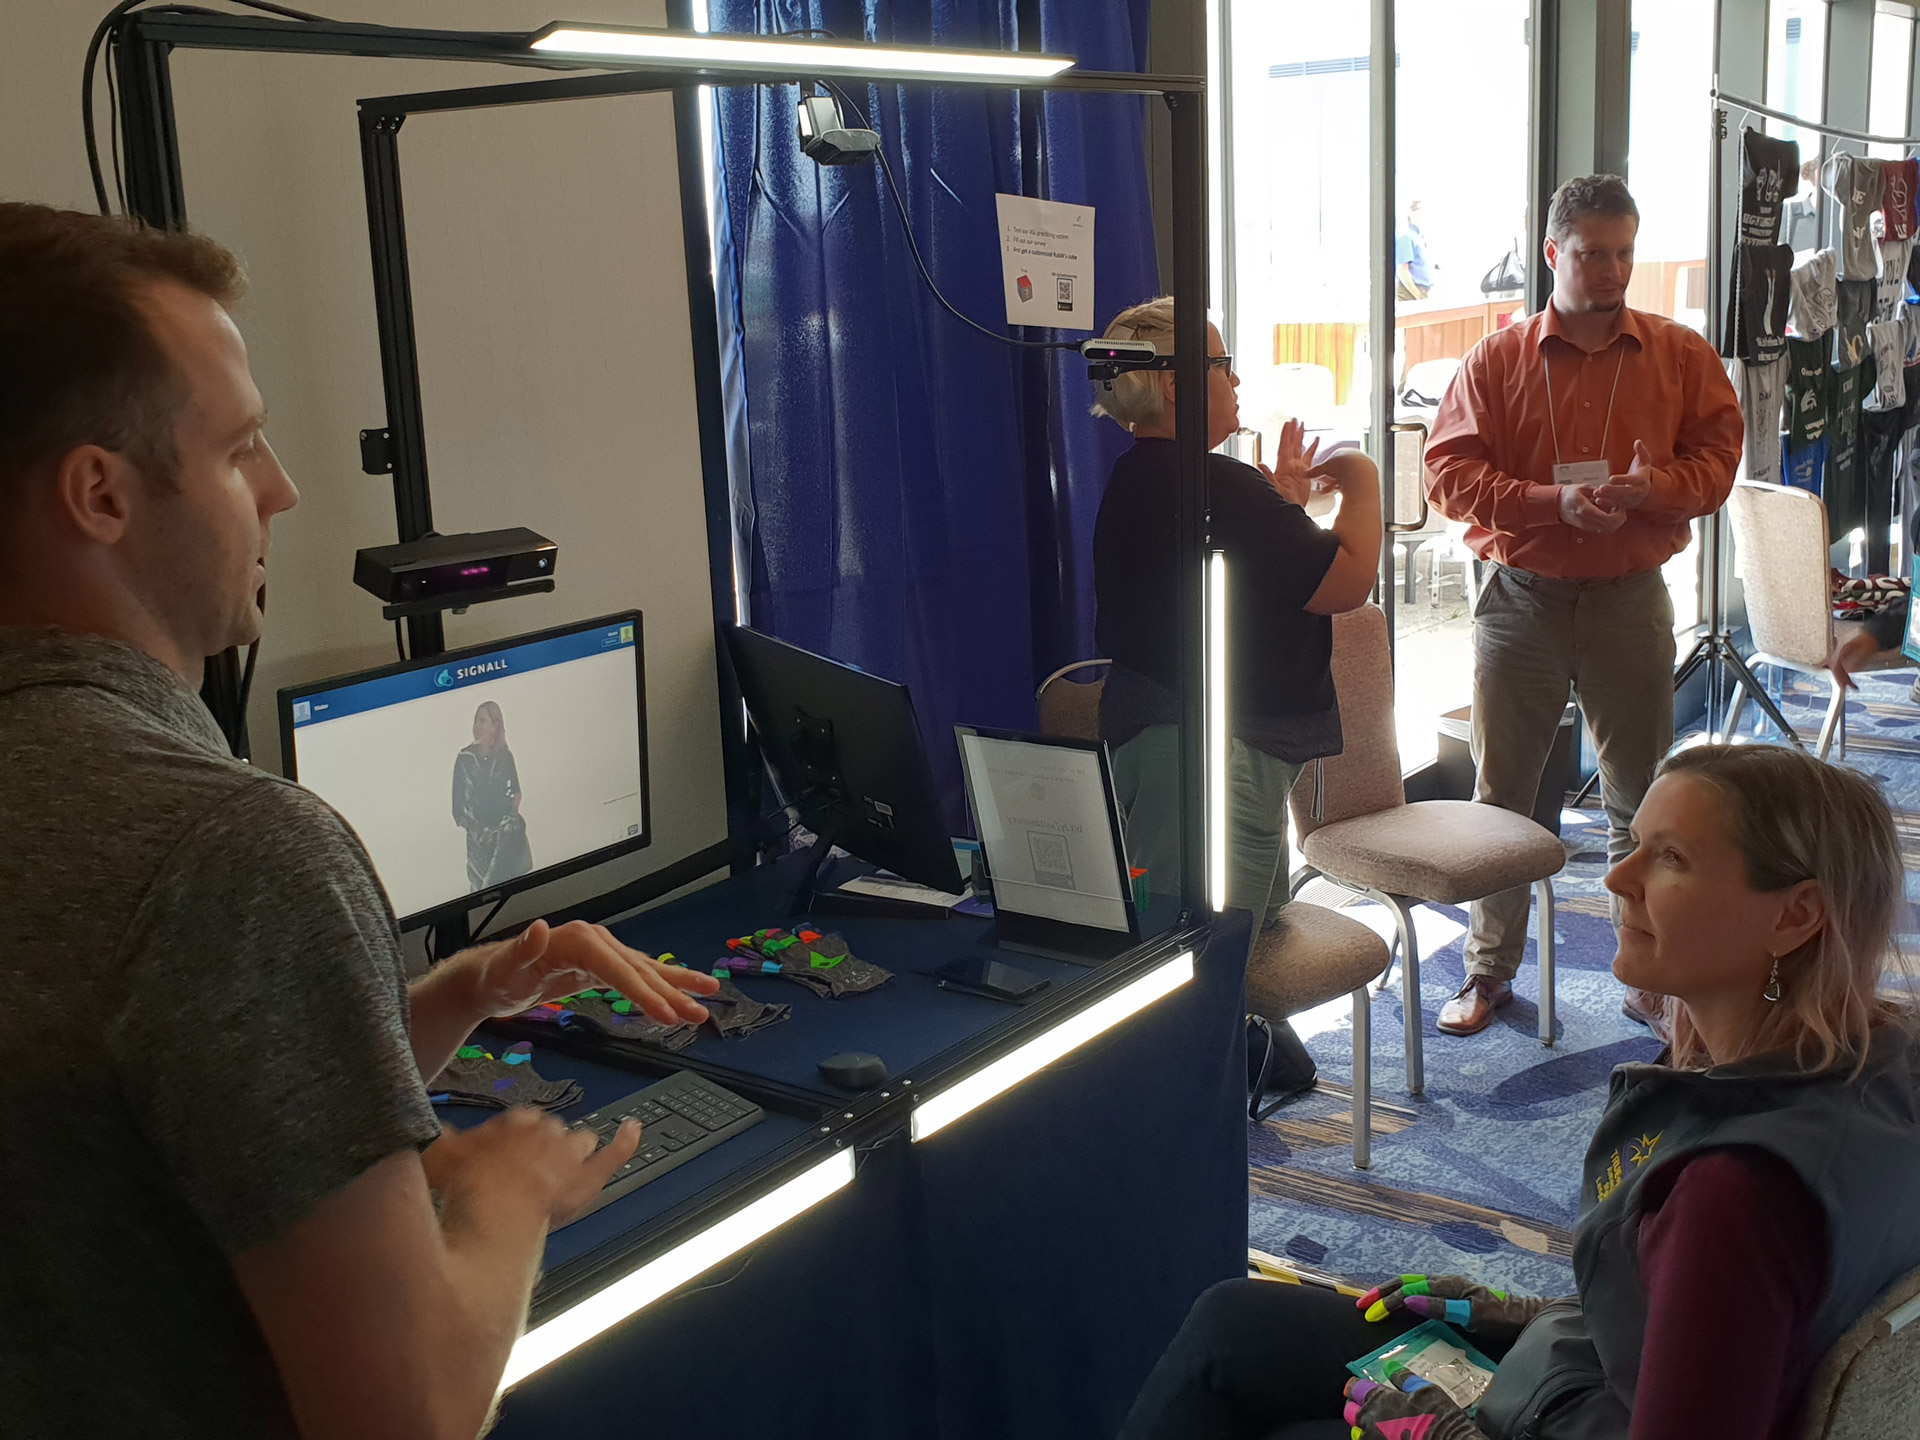 SignAll booth at an event. One person is practicing ASL with SignAll Learn system.